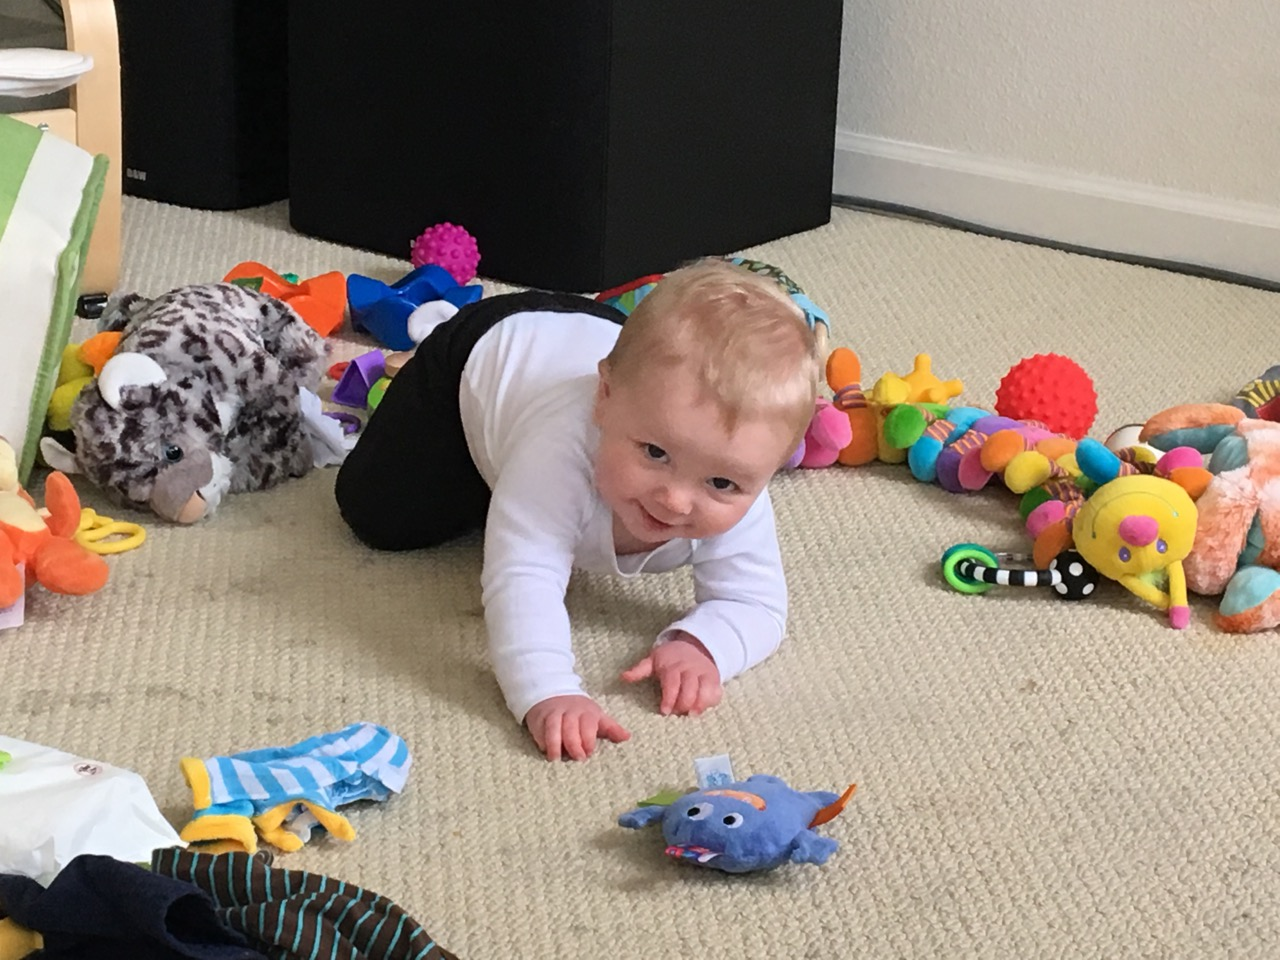 Attempting to crawl...